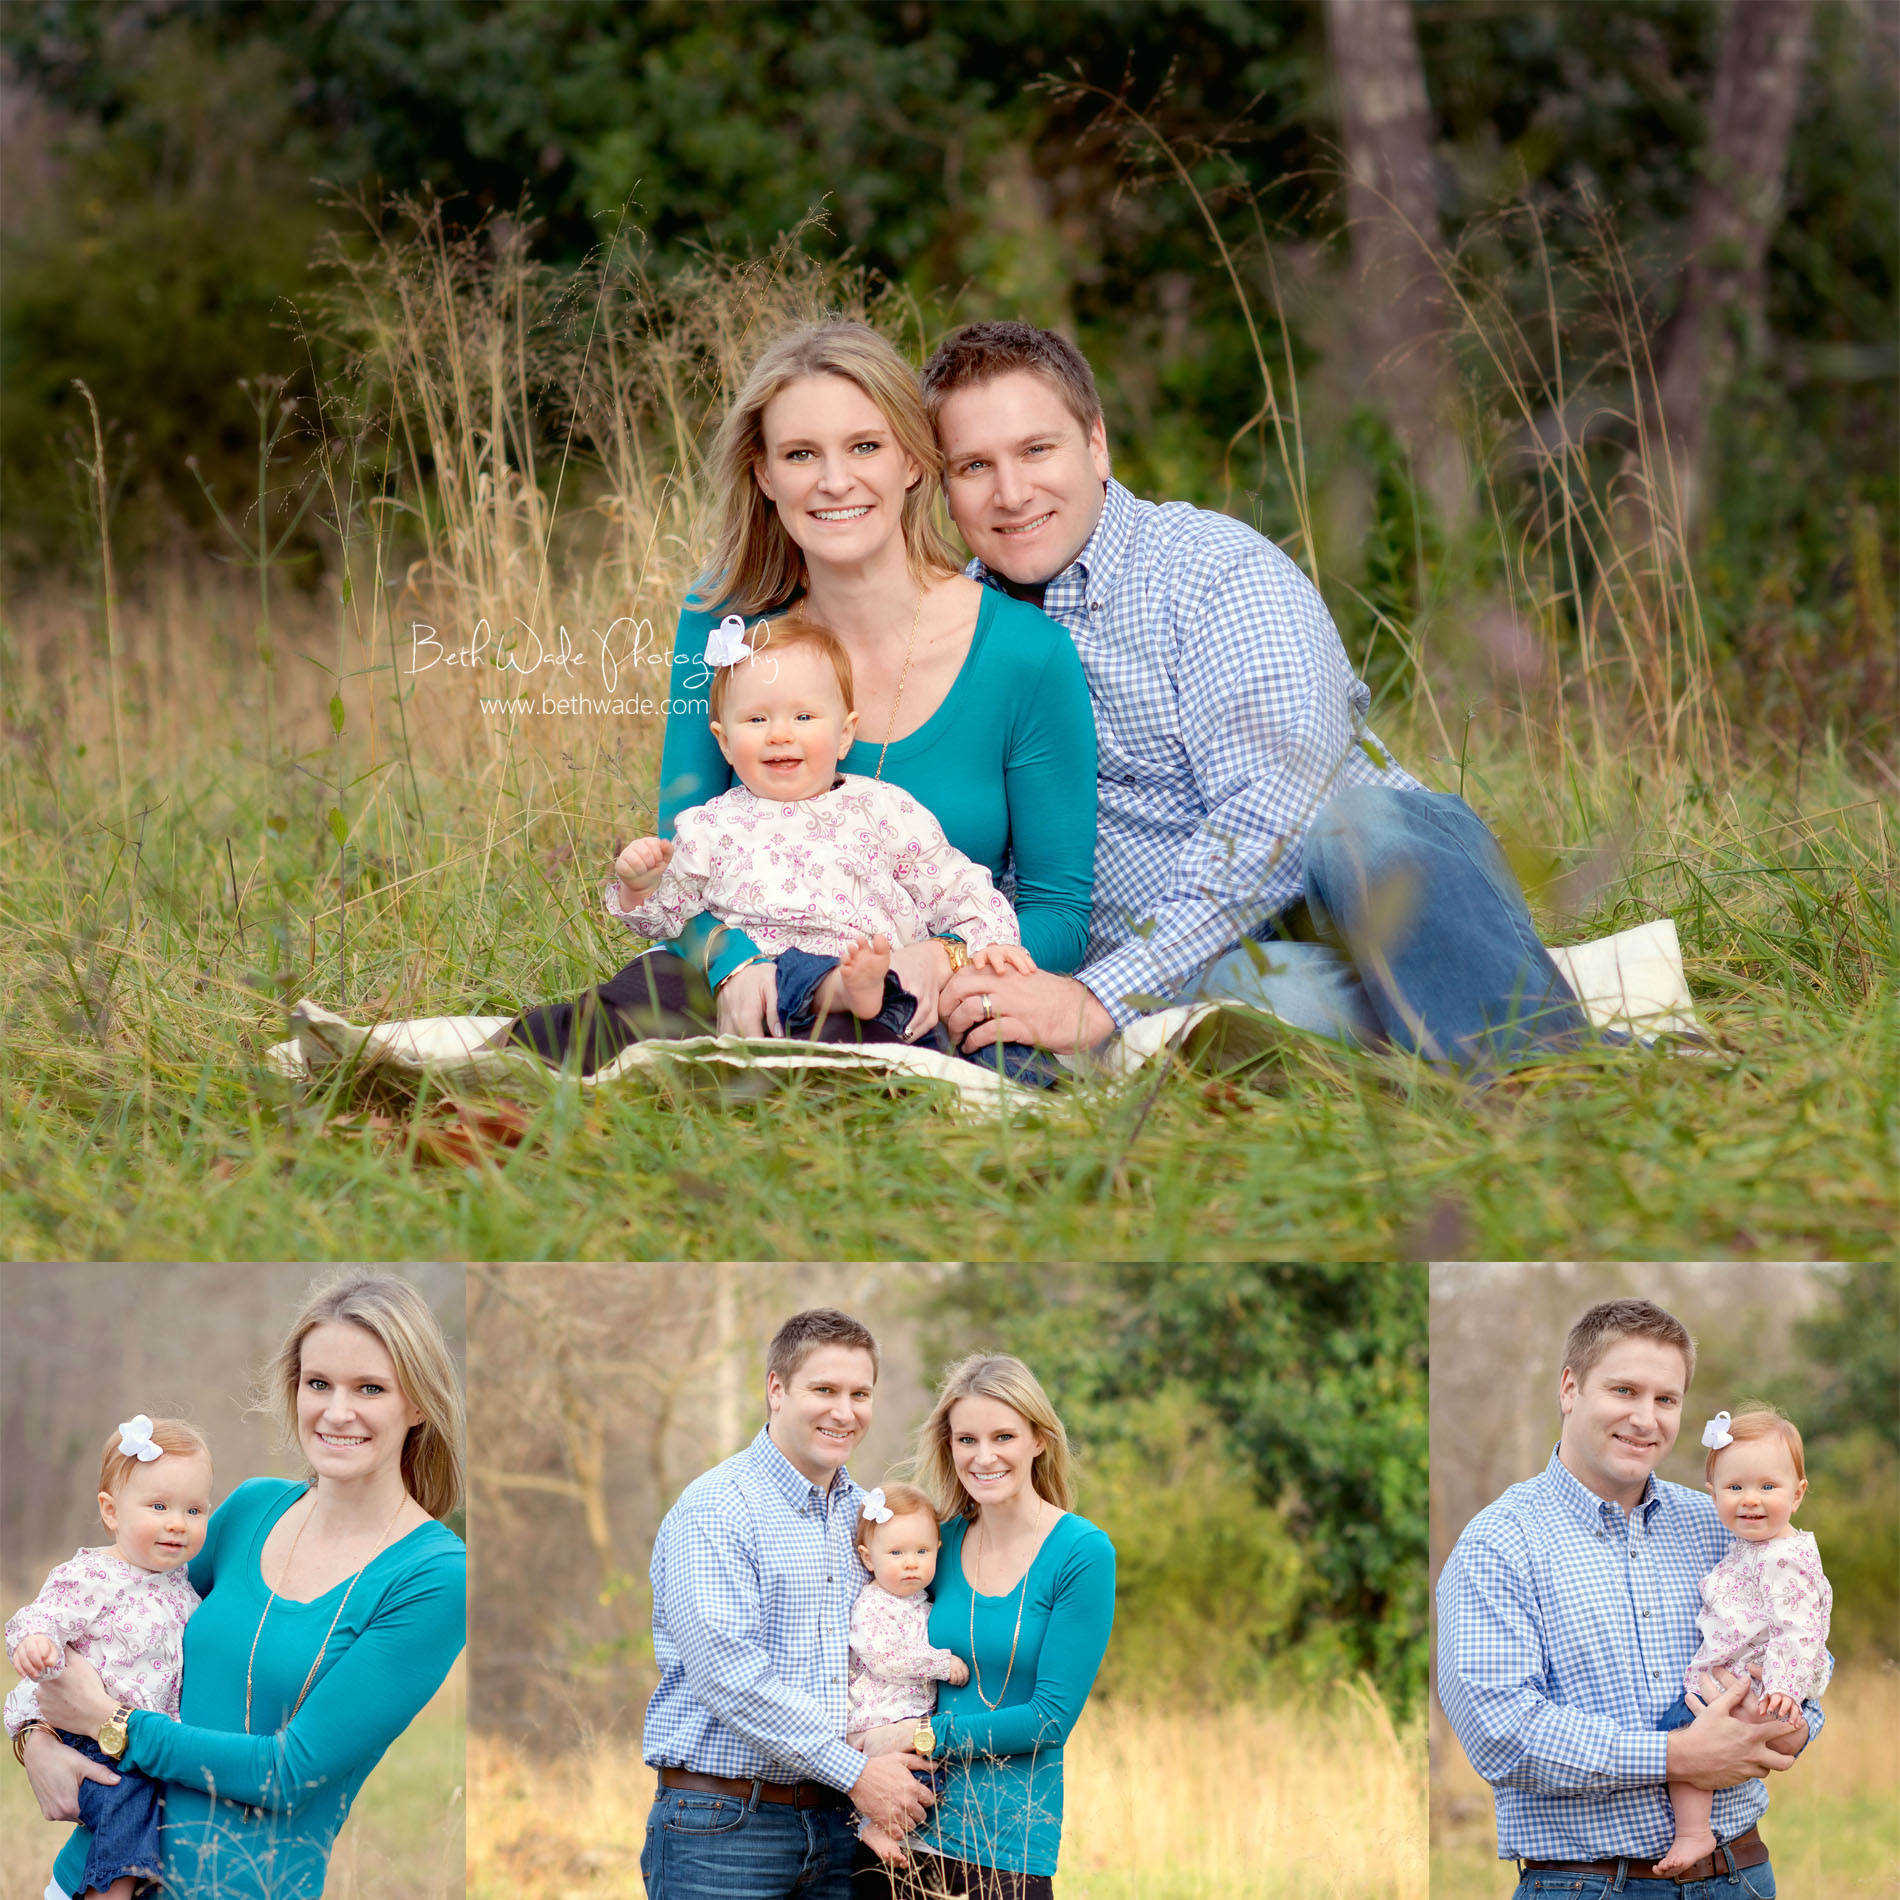 Family of 3 with 1 year old baby girl charlotte baby photographer